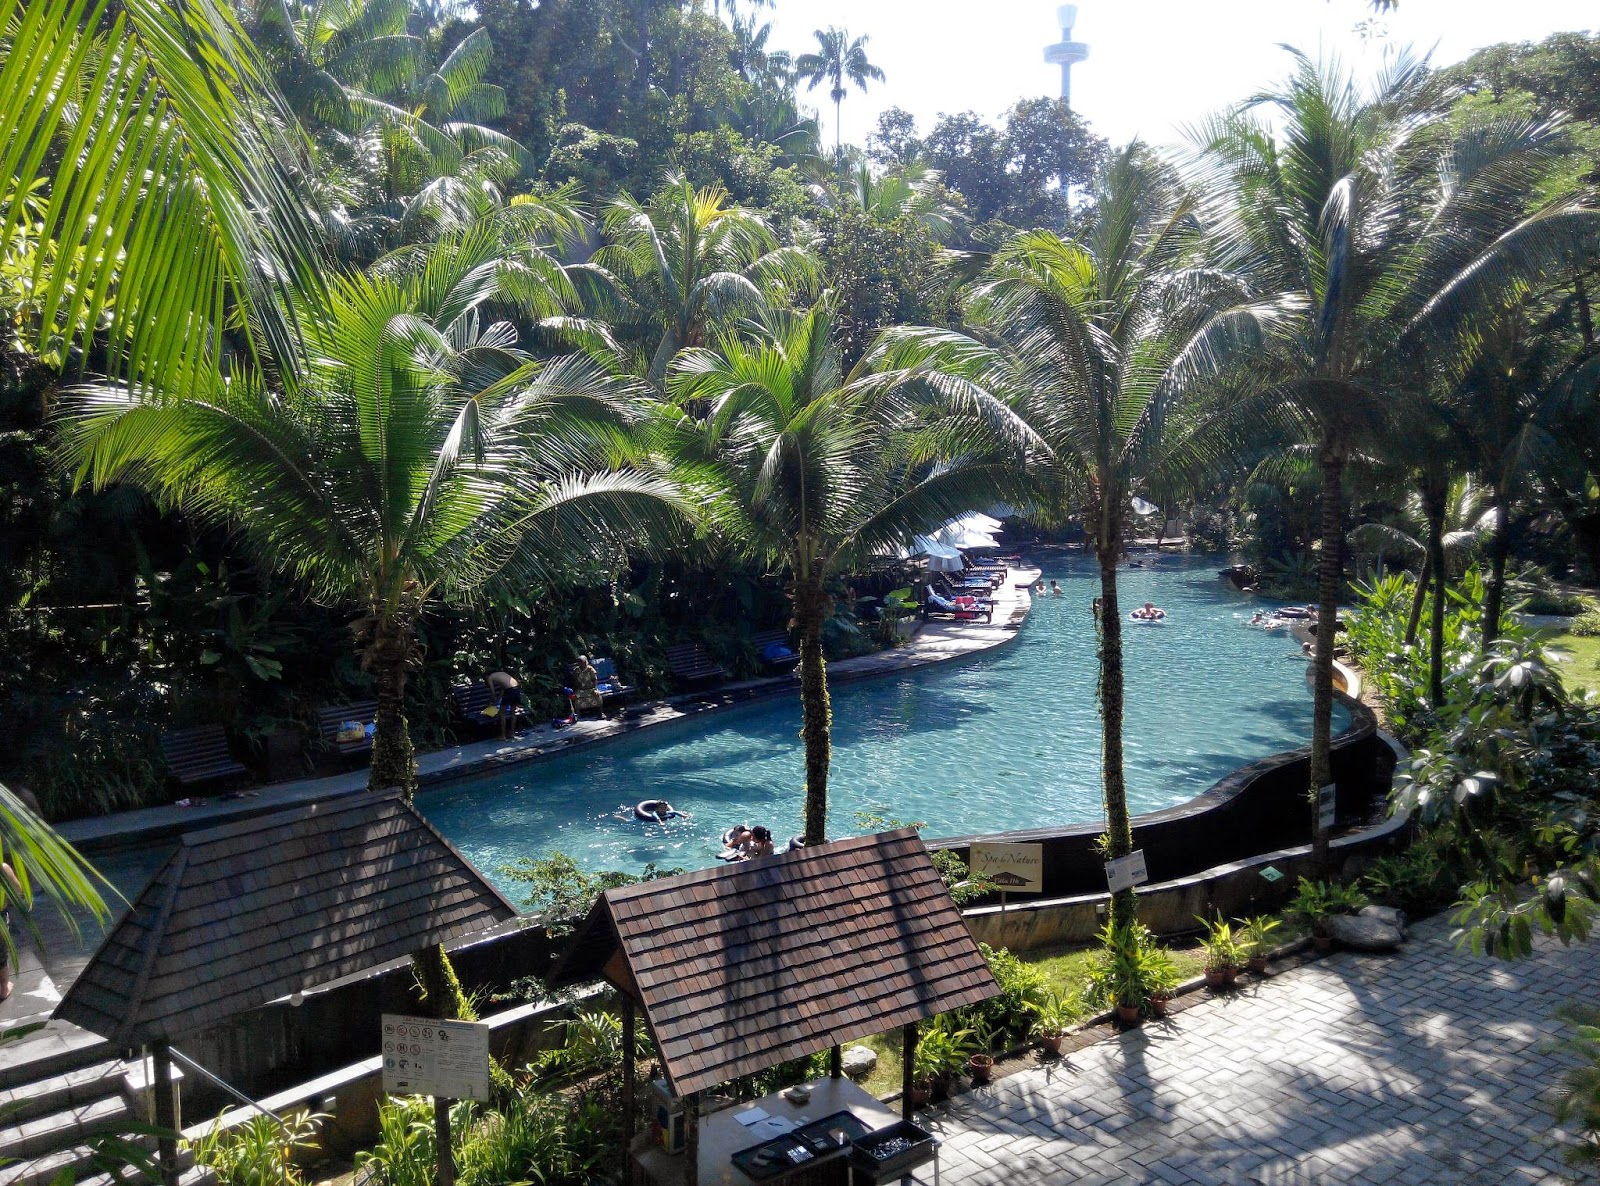 My lilac room staycation in sentosa siloso beach resort - Siloso beach resort swimming pool ...